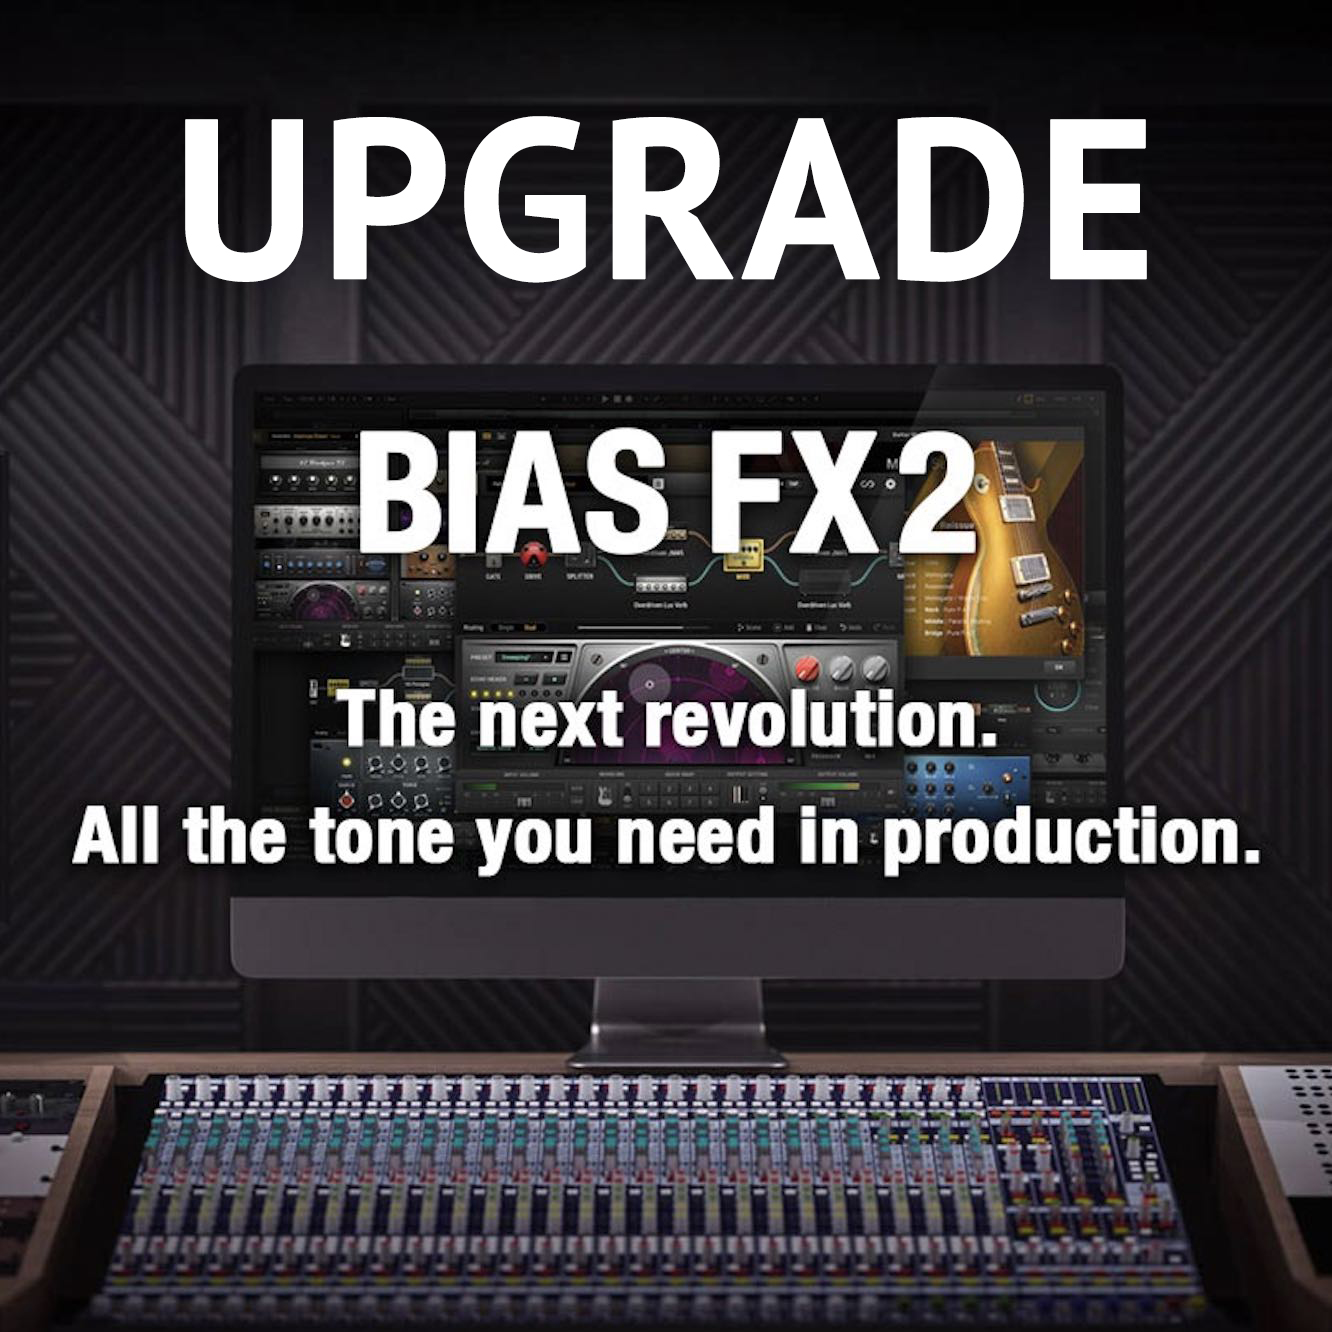 Upgrade From BIAS FX Professional to BIAS FX 2 Professional